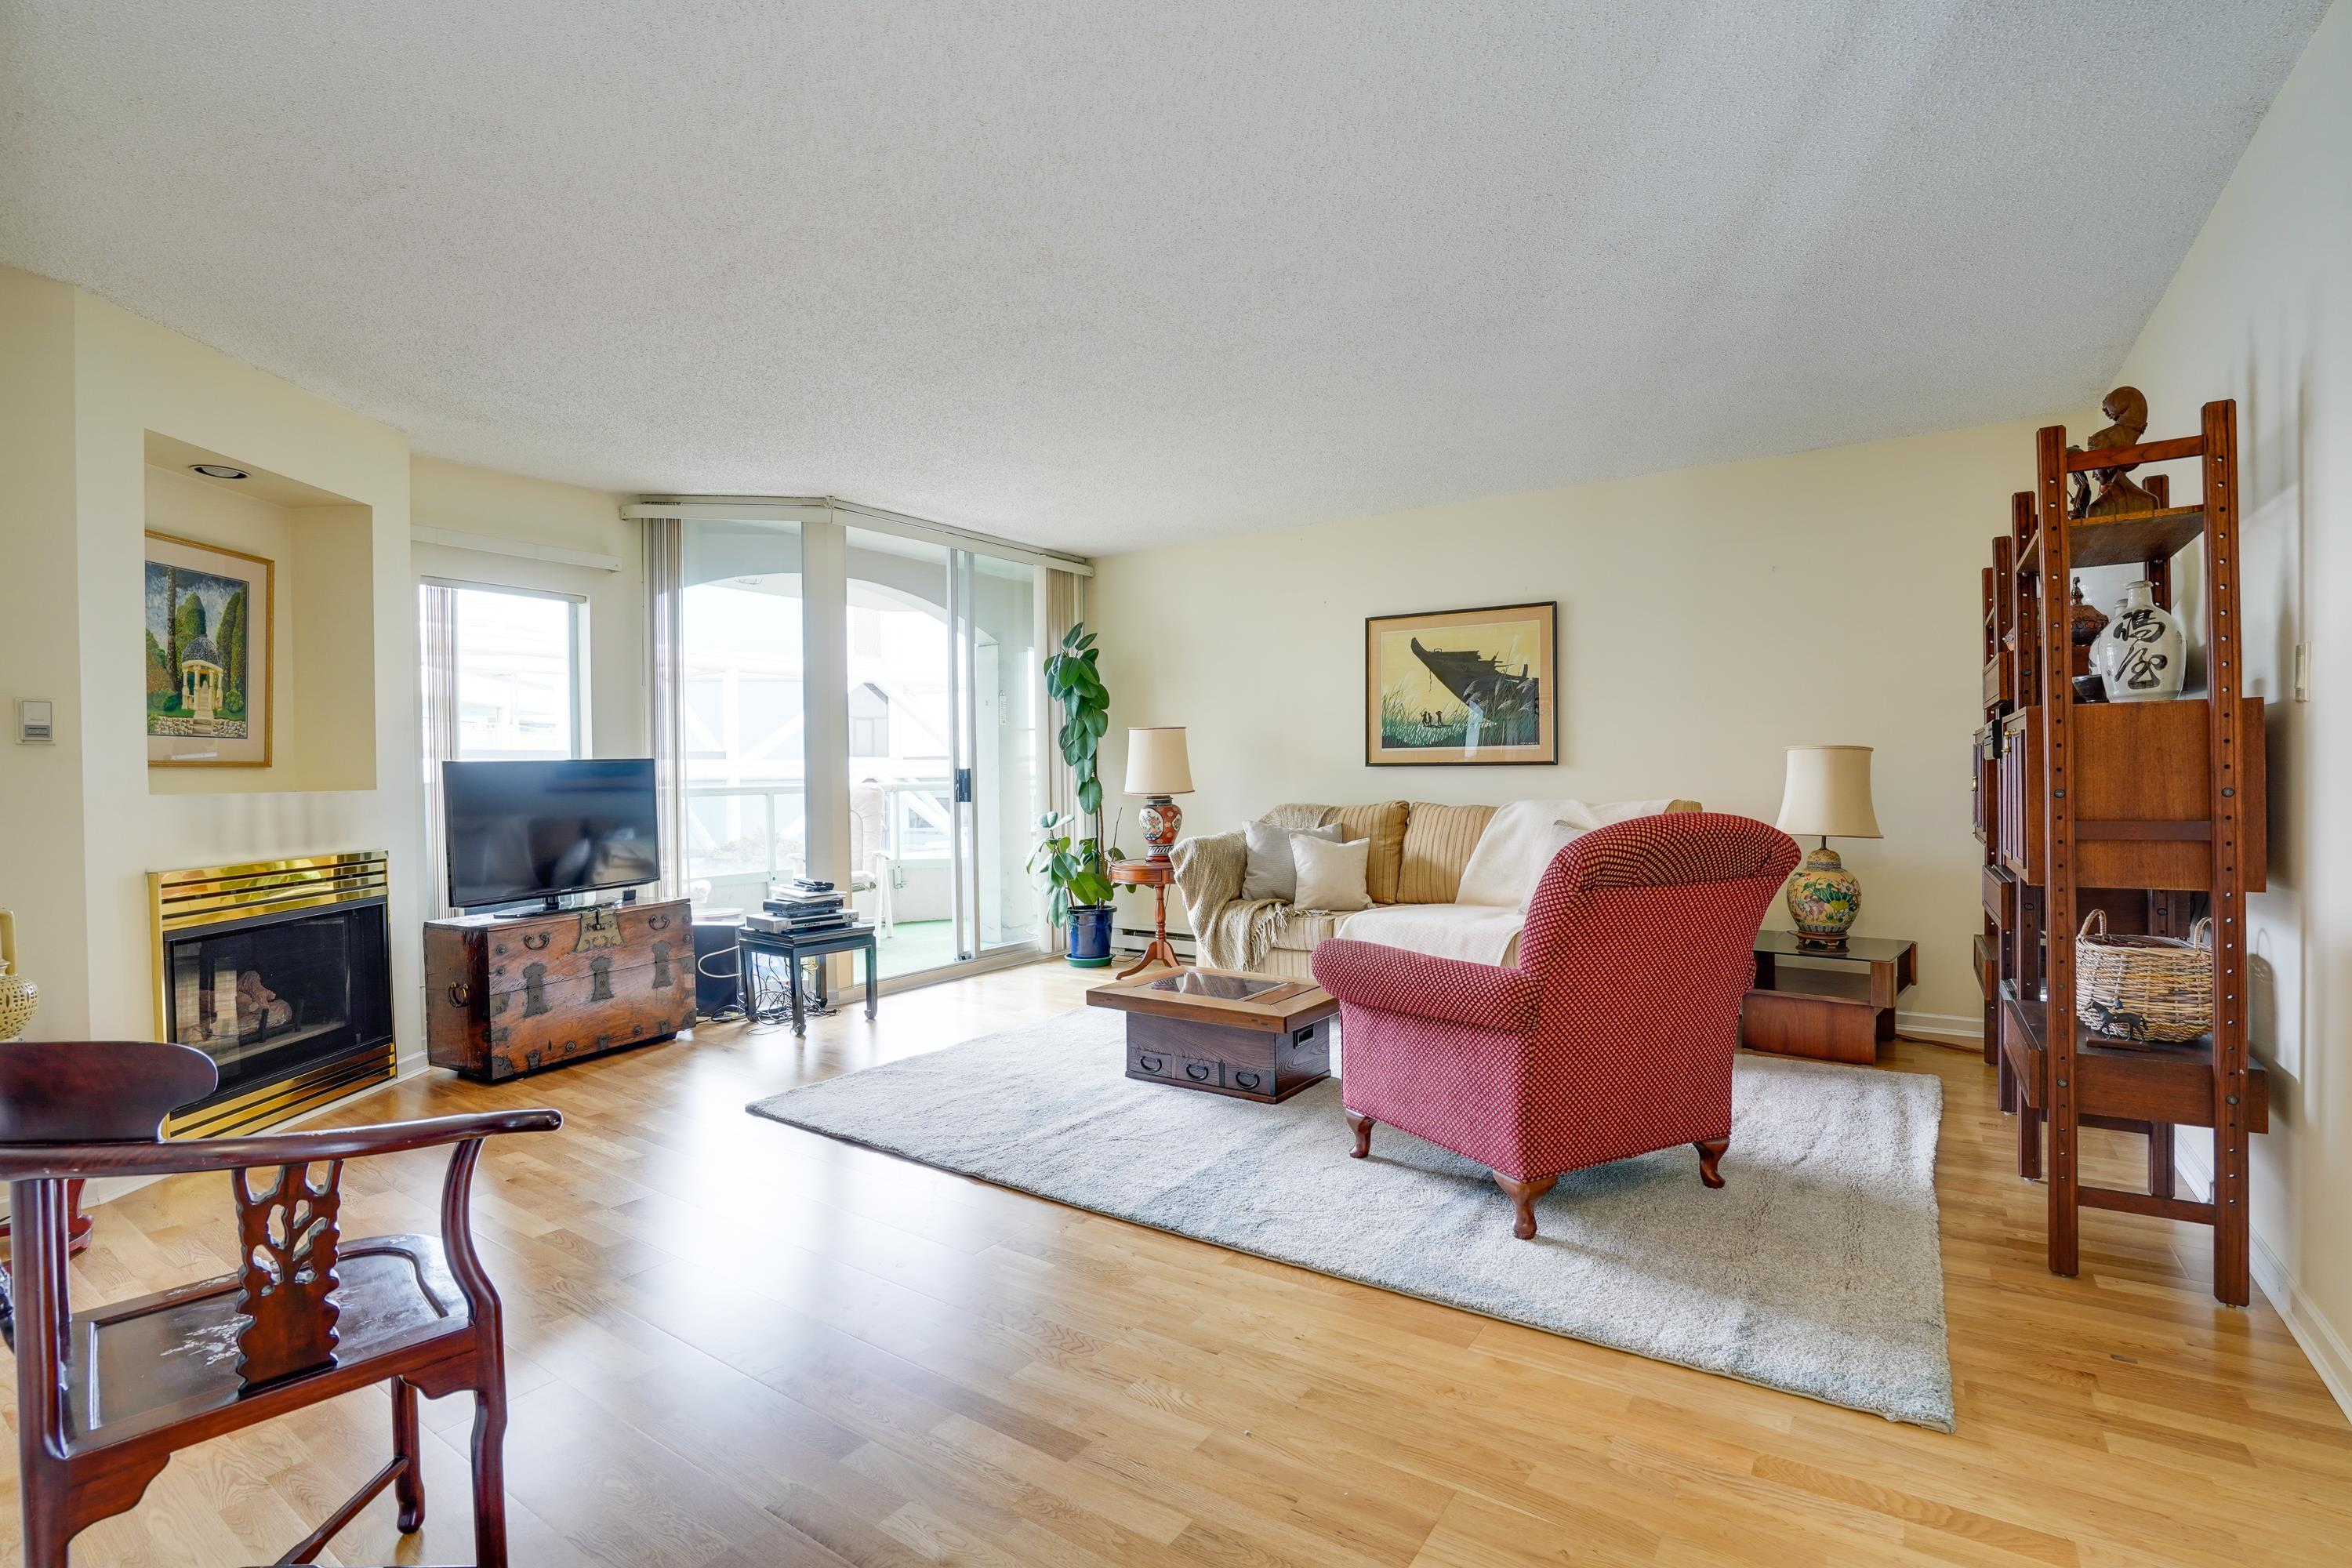 405 168 CHADWICK COURT - Lower Lonsdale Apartment/Condo for sale, 3 Bedrooms (R2619951) - #2